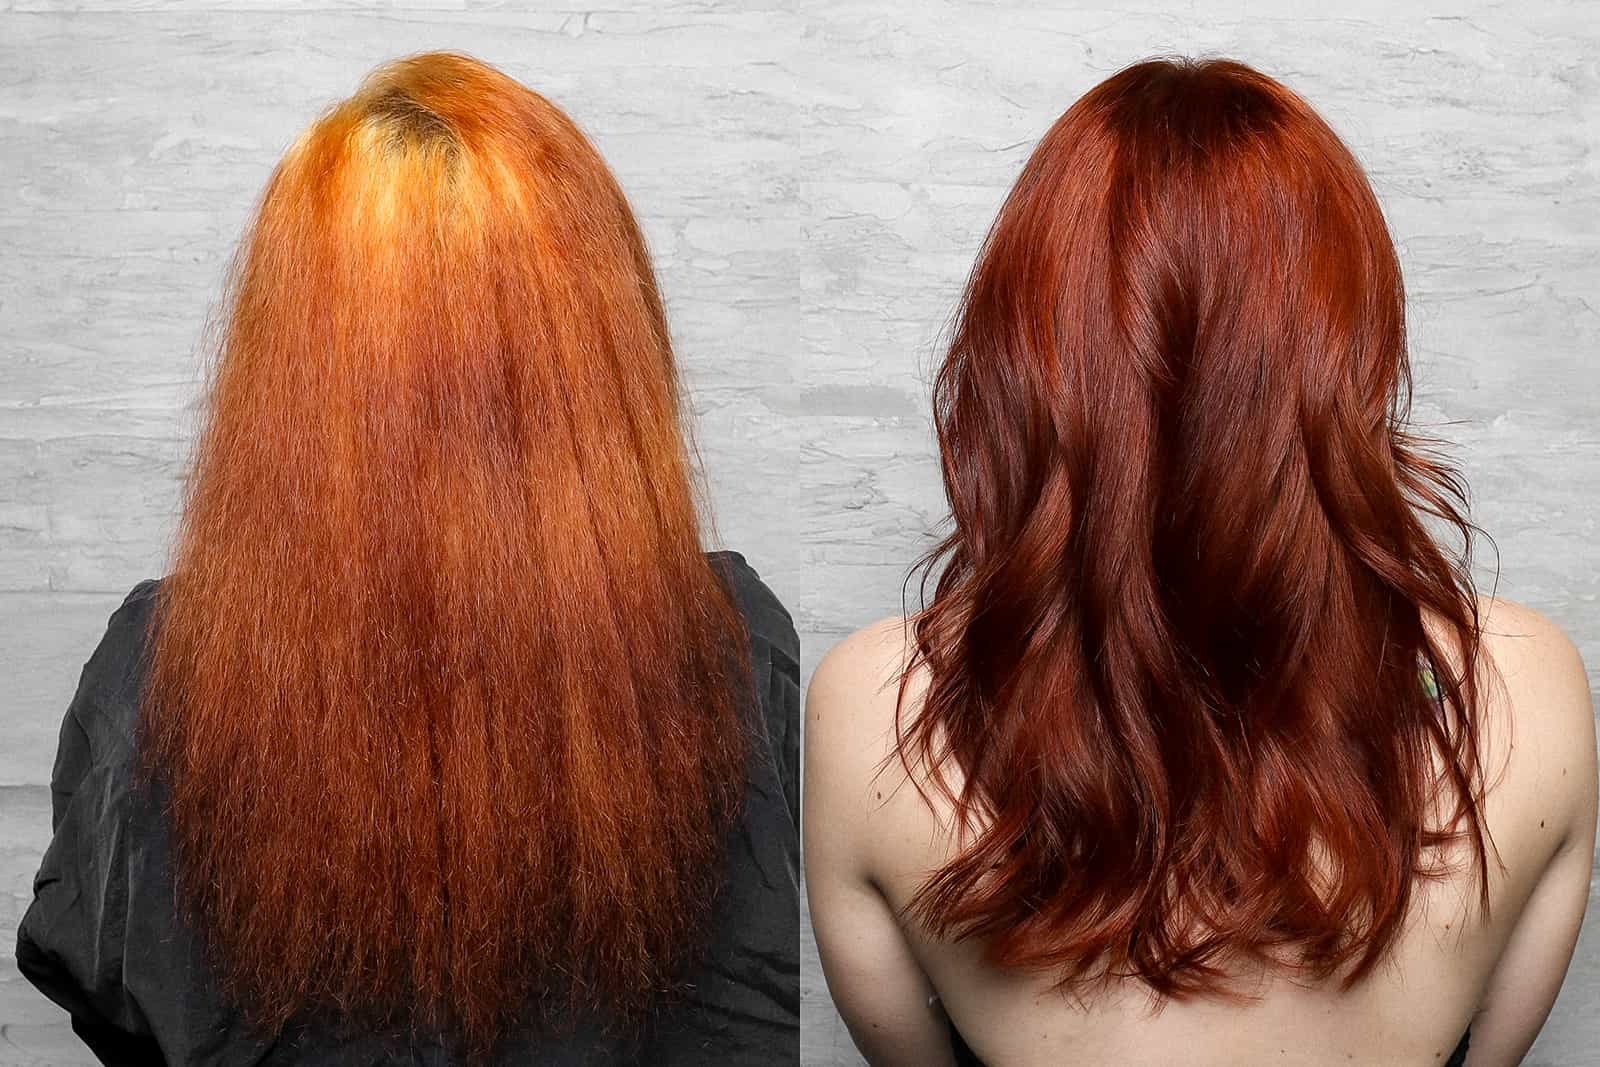 Before and after showing fried hair and color correction fix